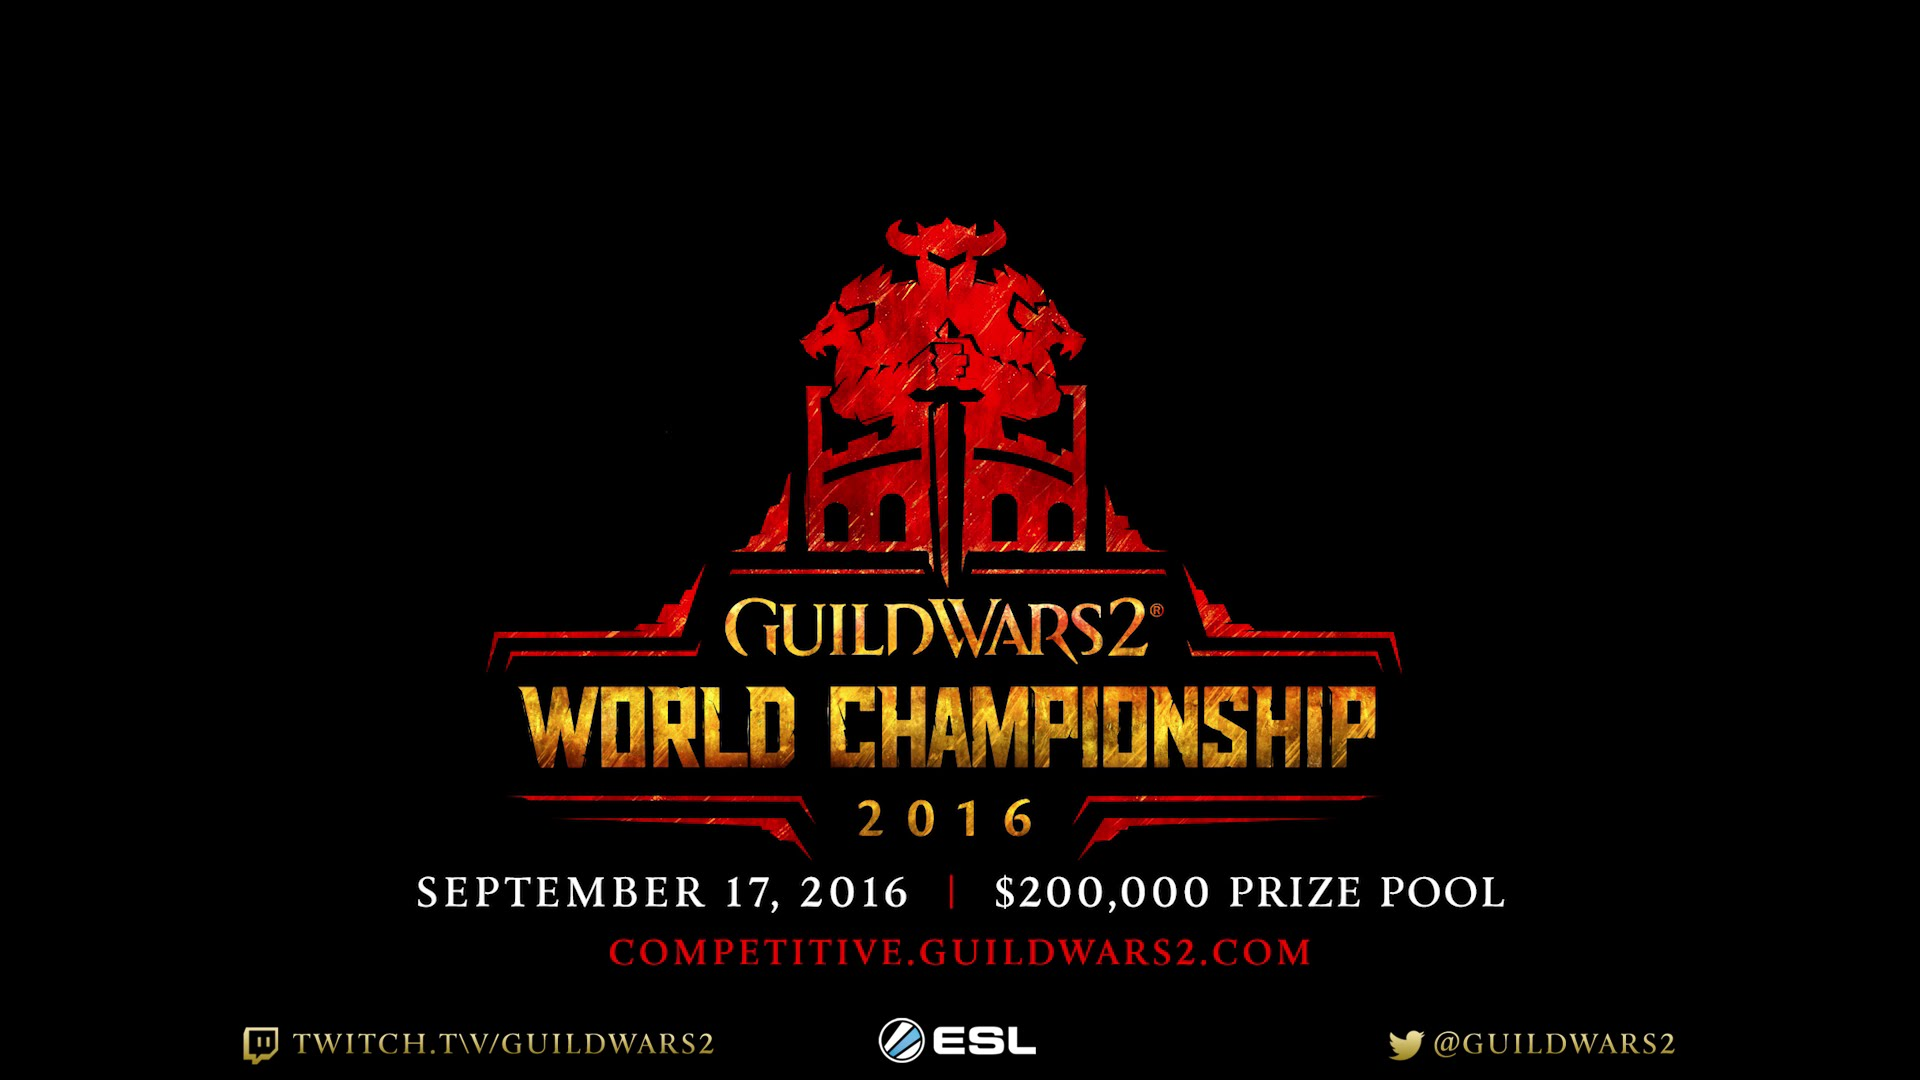 Announcing the Guild Wars 2 World Championship